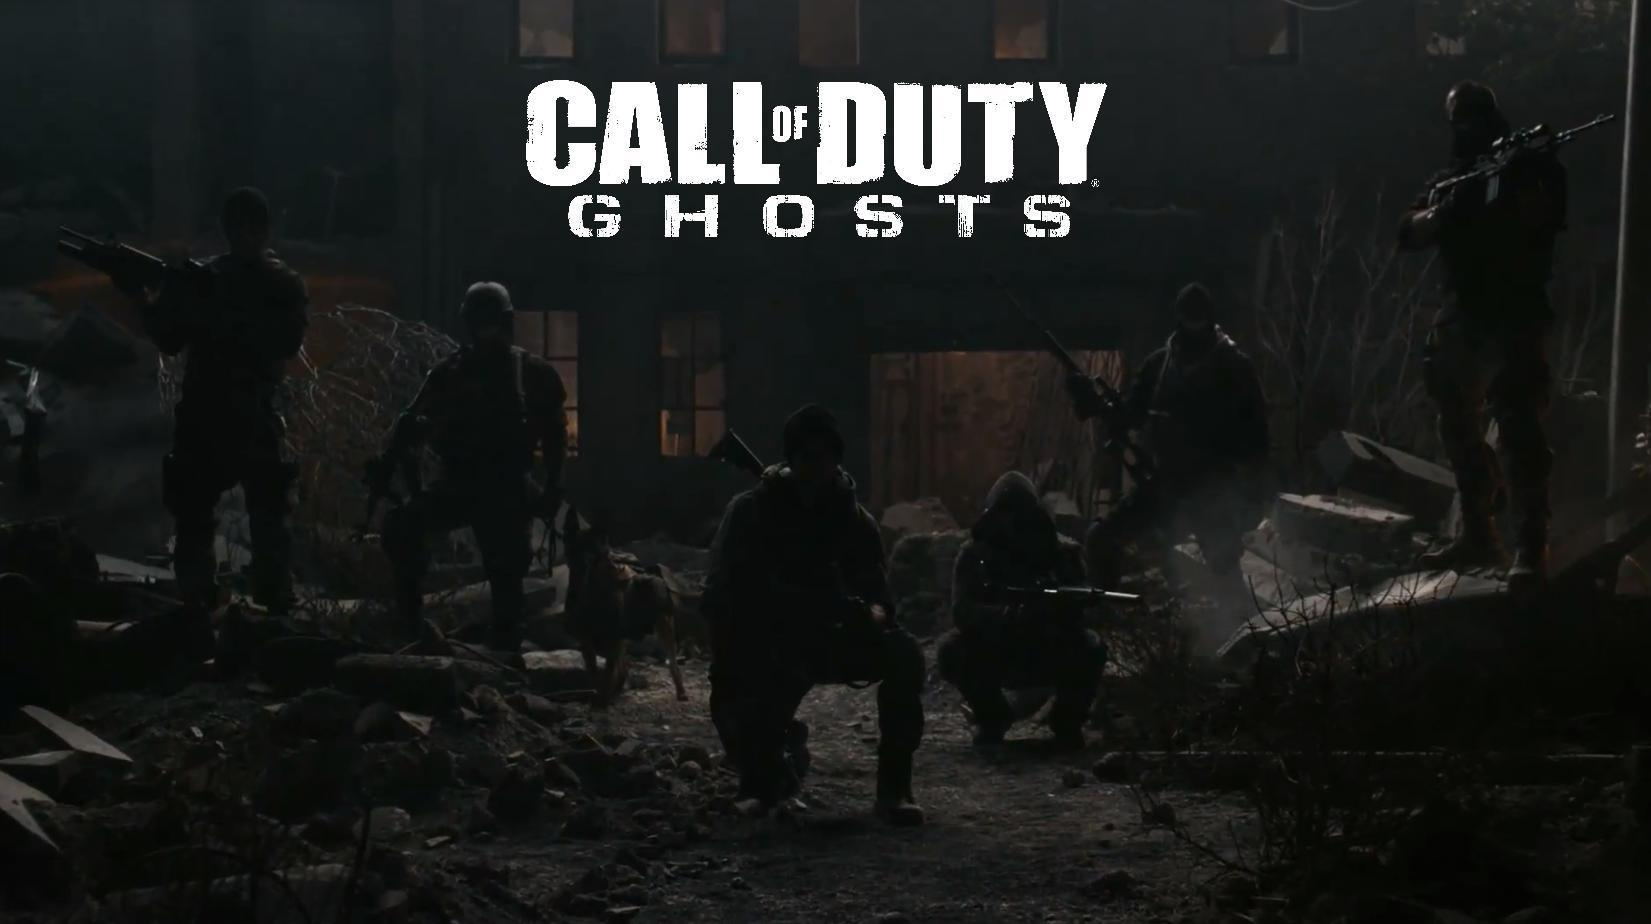 call of duty ghosts hd wallpapers